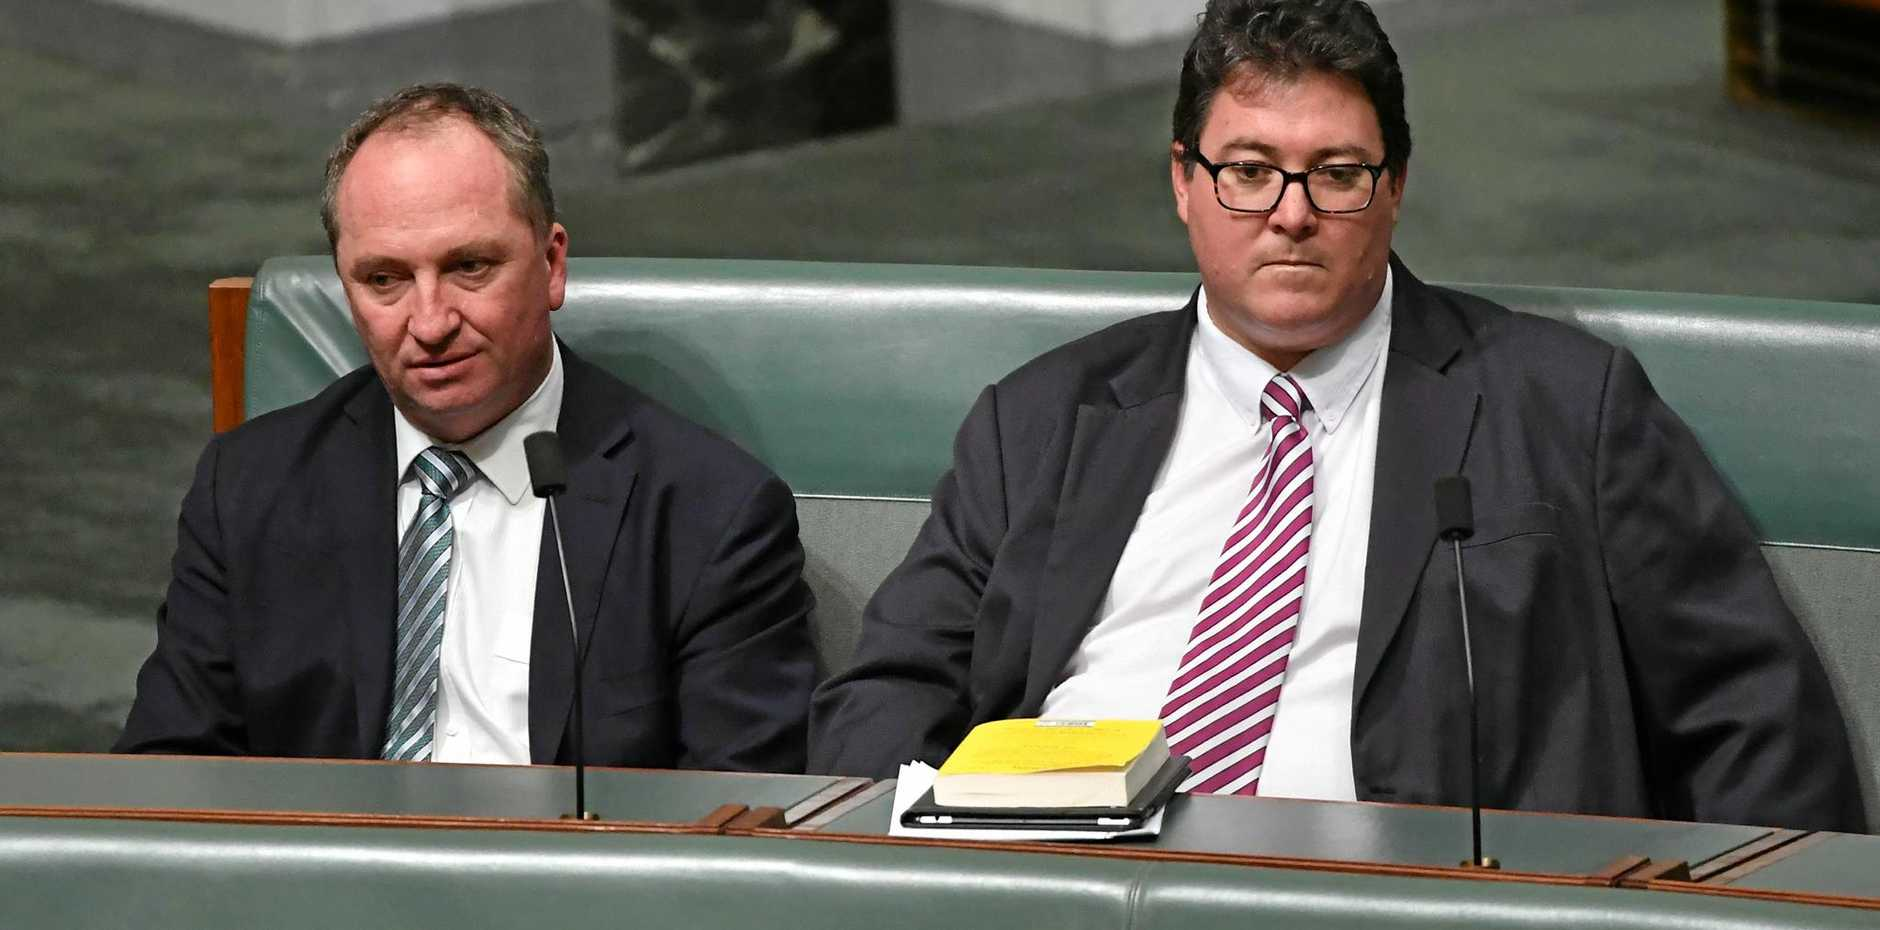 Deputy Prime Minister Barnaby Joyce and Nationals Member for Dawson George Christensen in the House of Representatives in Canberra on Thursday, June 15 at the banking commission inquiry debate.